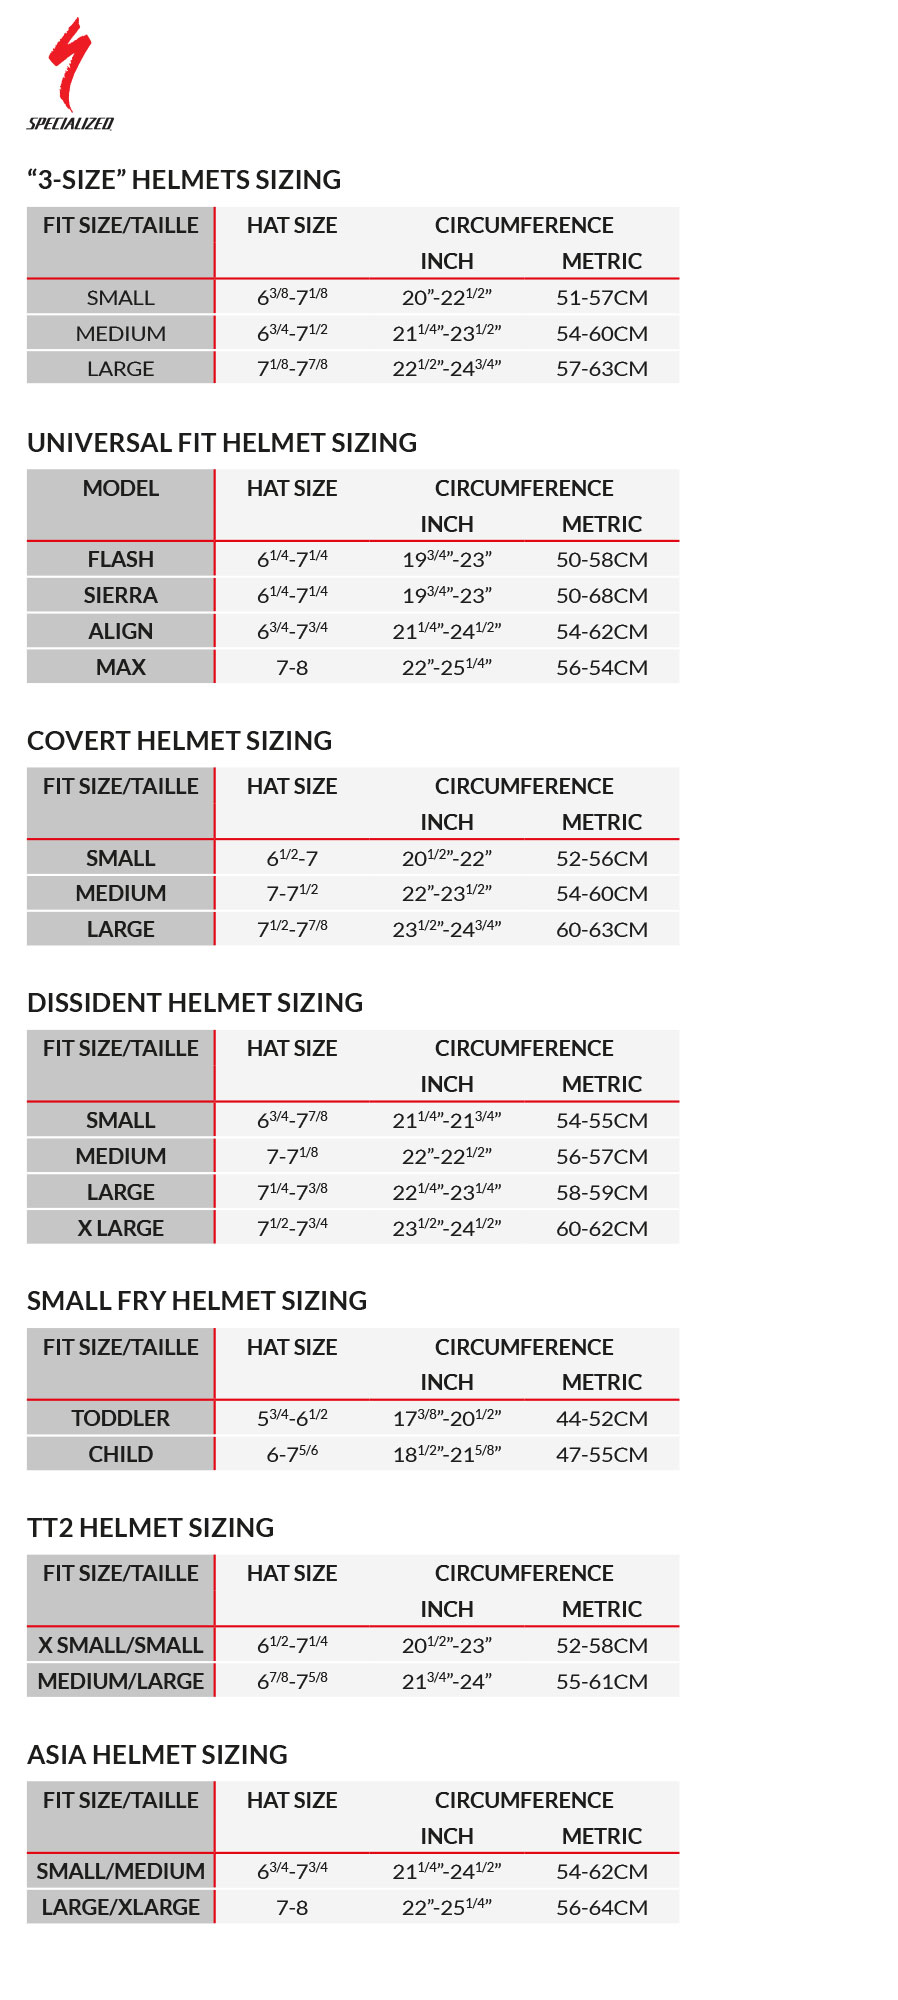 specialized size chart 2017: Specialized shuffle childrens helmet 2016 sigma sports